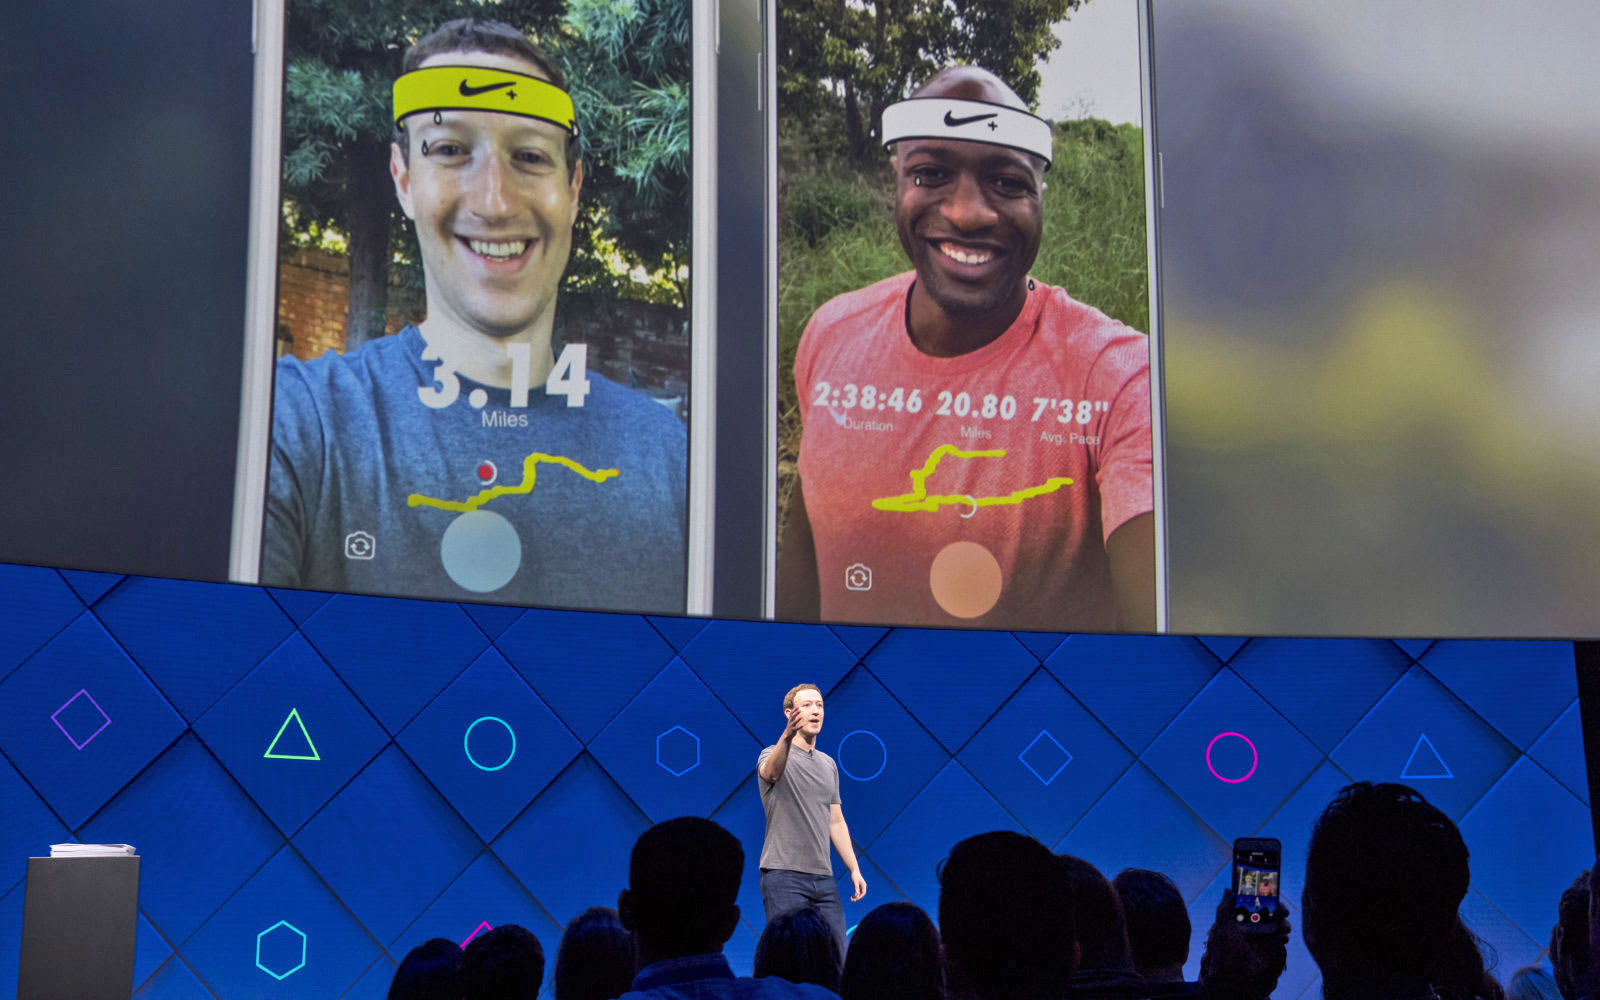 Facebook hopes to prove AR is more than selfie filters and games